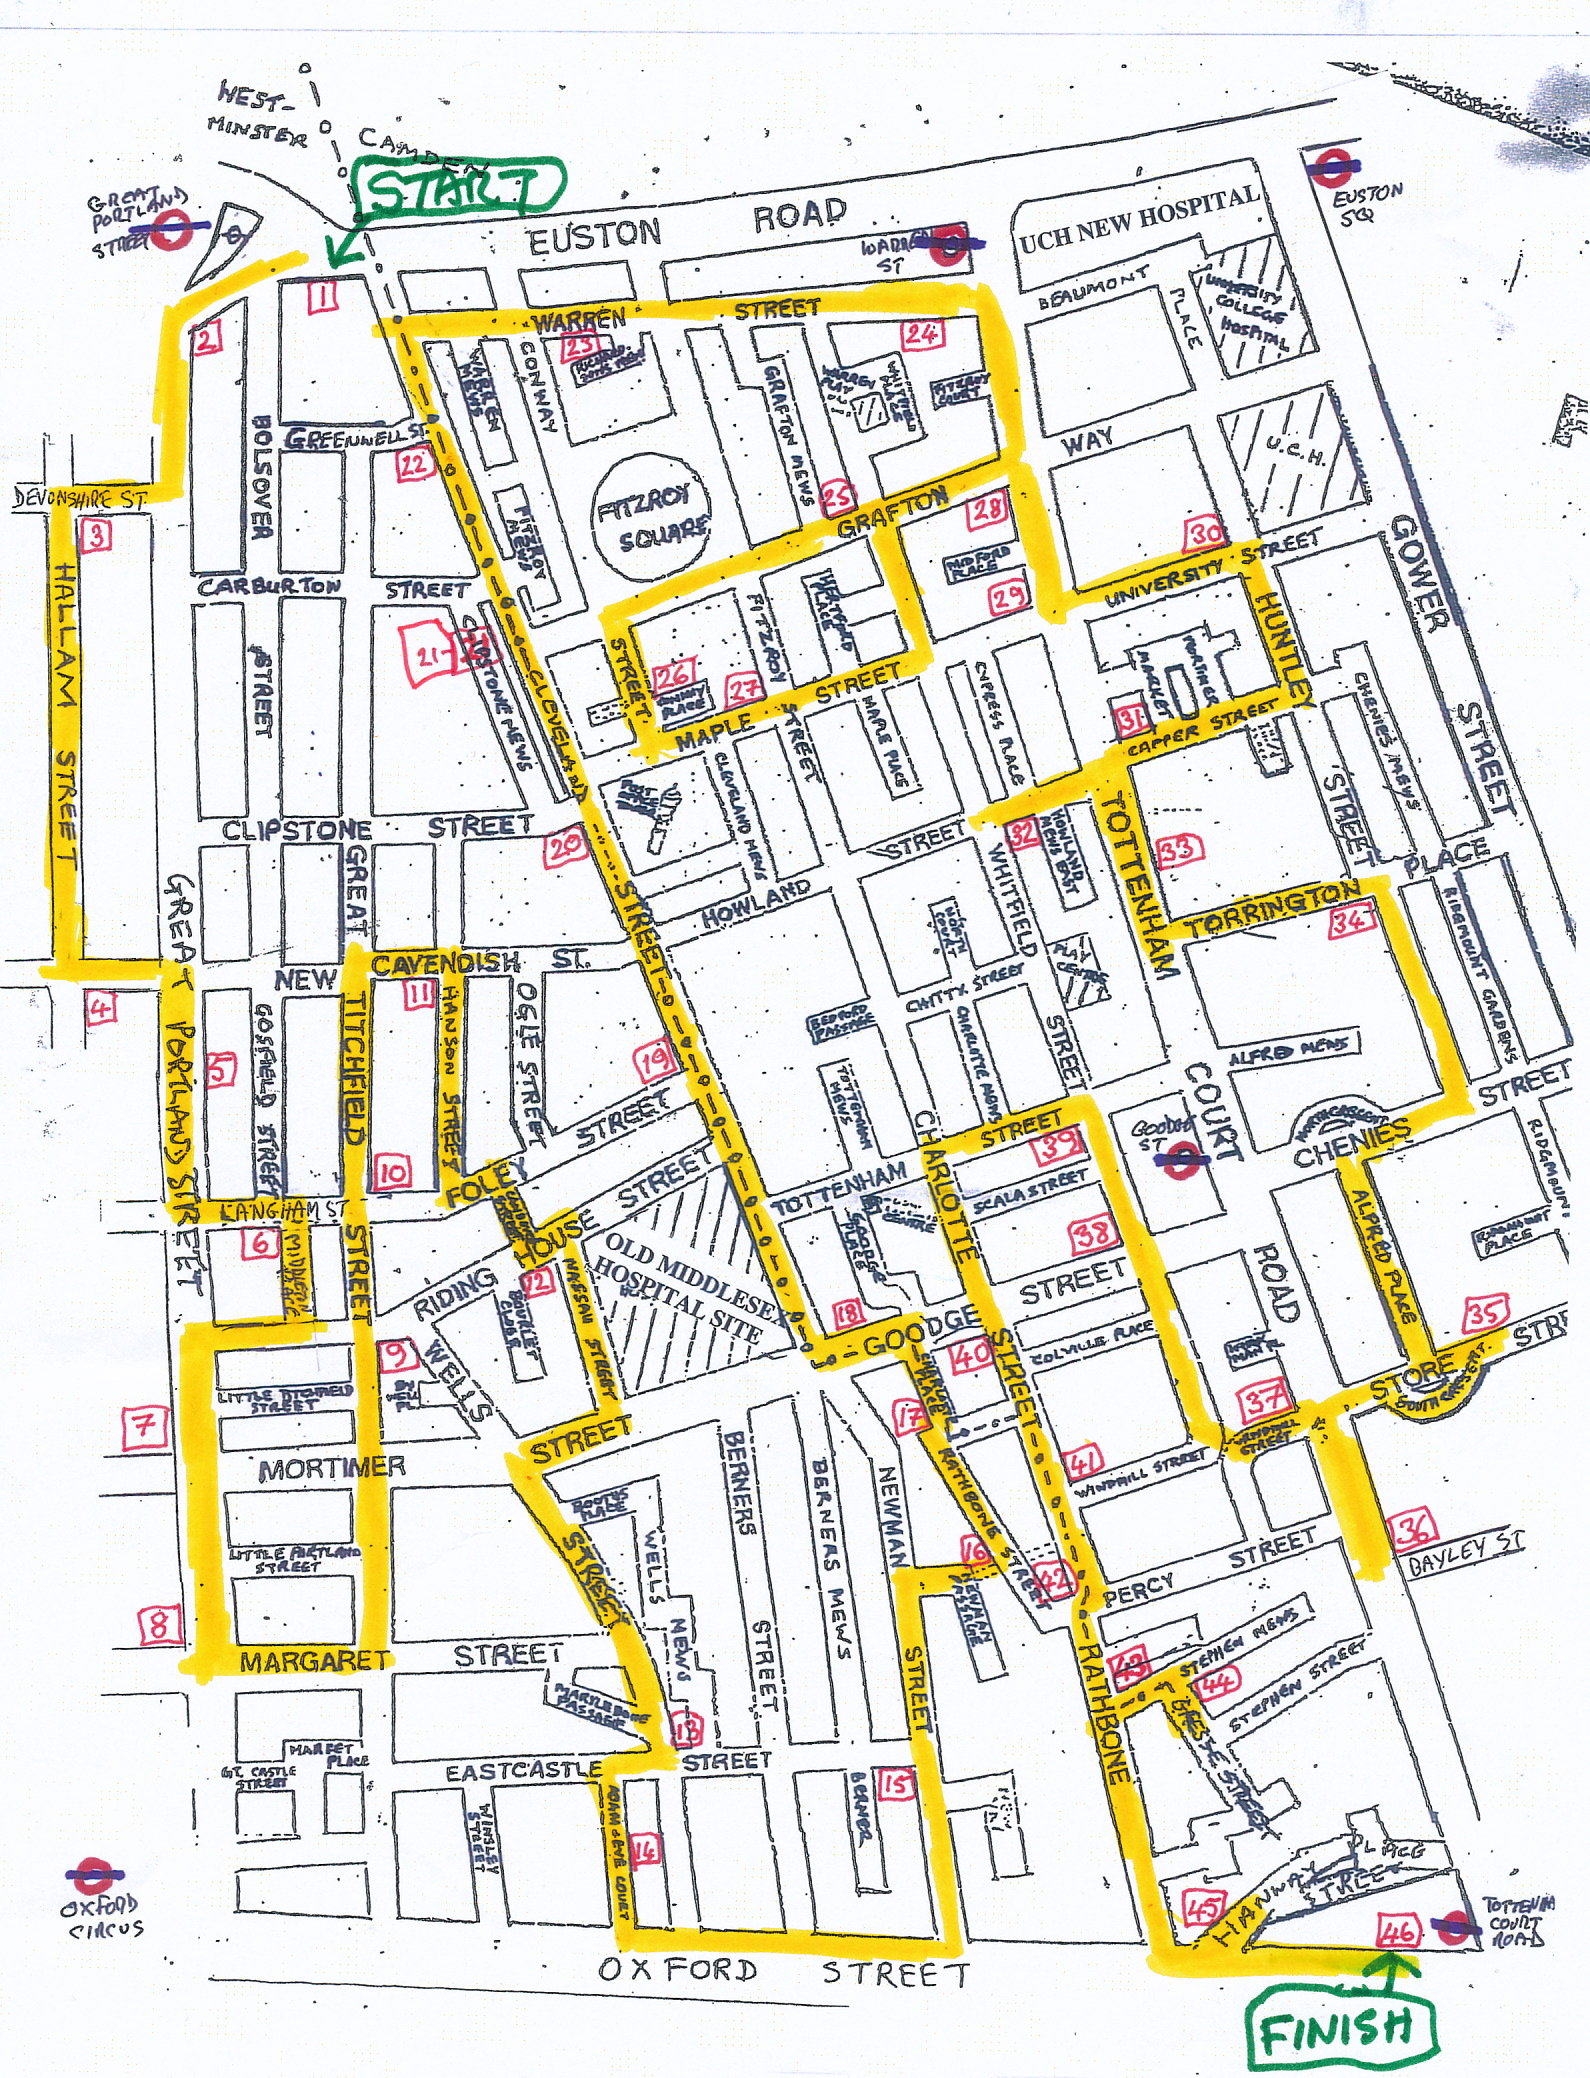 Join the Fitzrovia Crawl from 28 March to 2 April